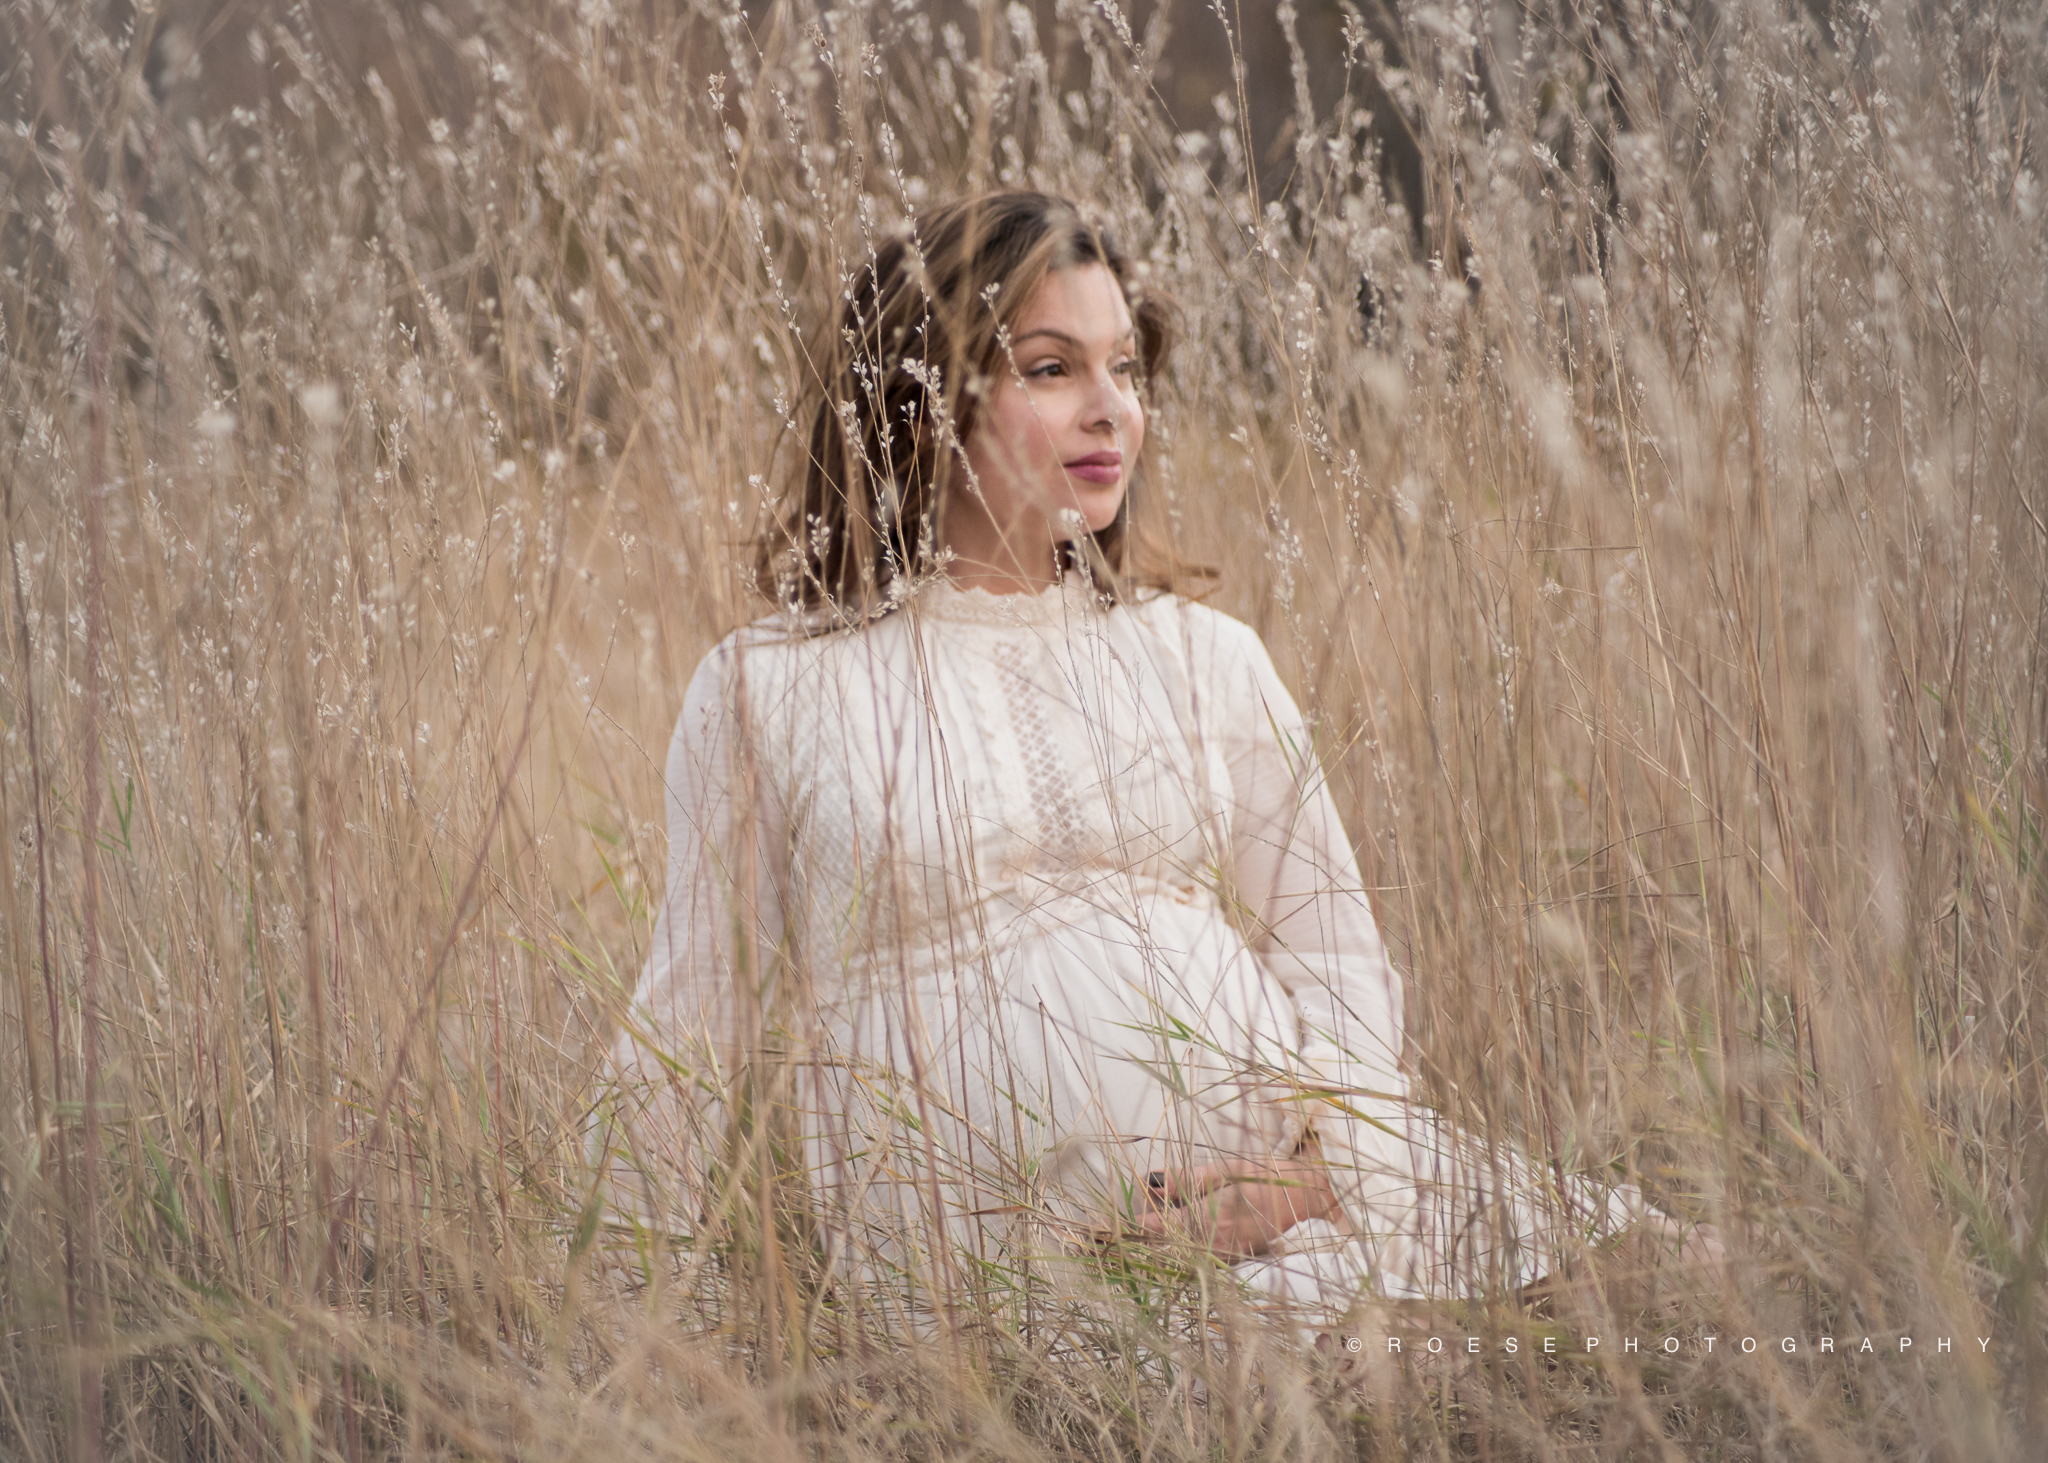 C.-Roese-Ramp-Roese-Photography_jess_colorado_maternity-27.jpg